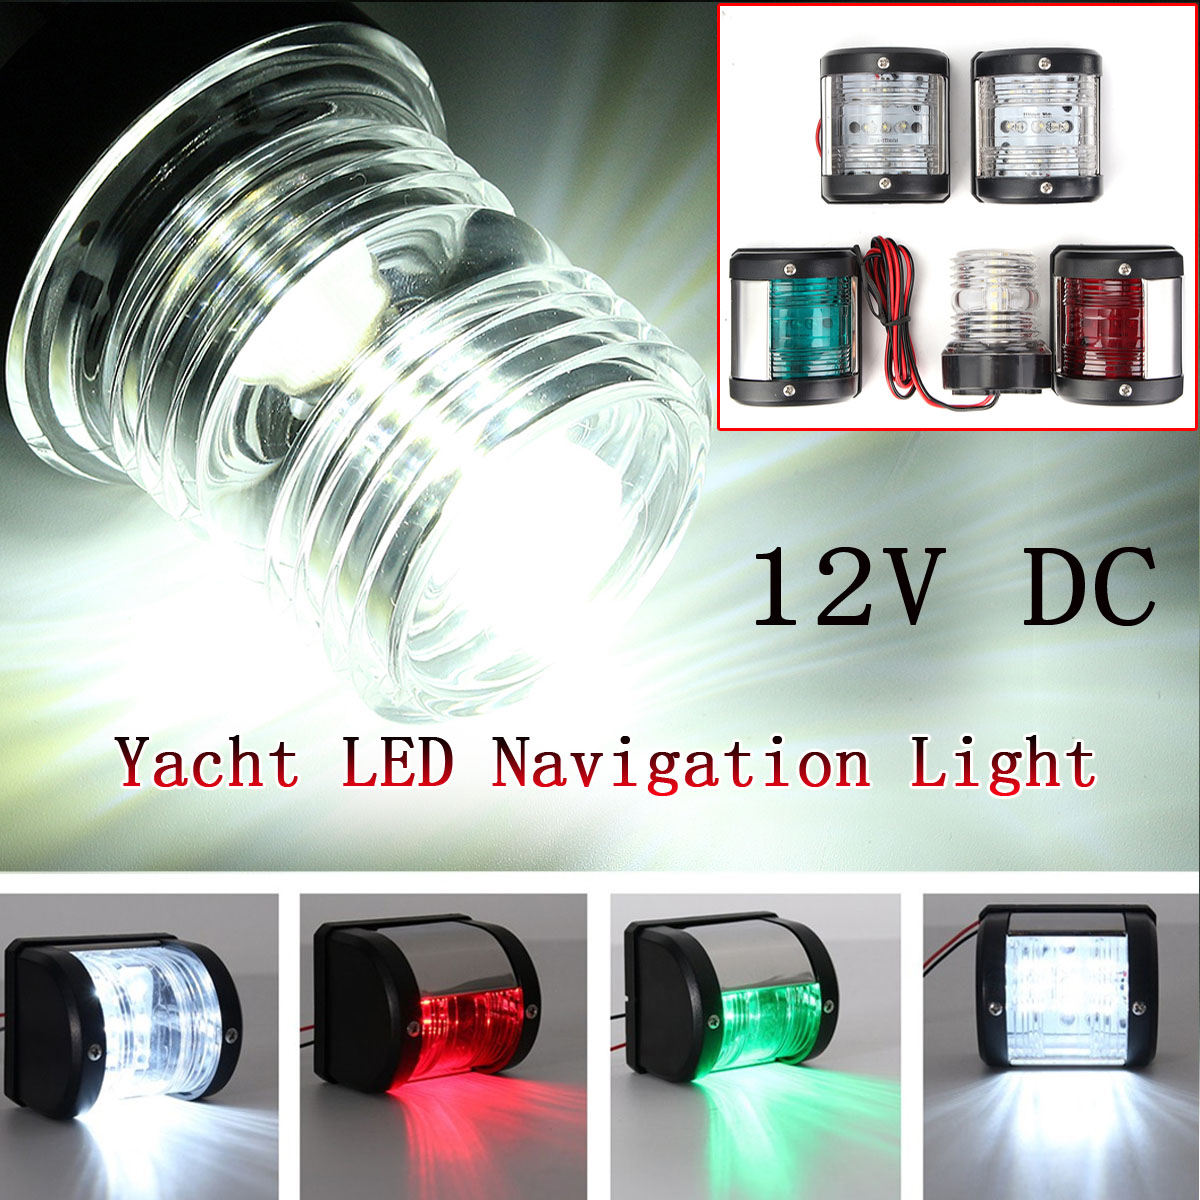 Marine Hardware Jeazea 2pcs Dc12v 8w Green Red Marine Navigation Led Light Starboard Port Side Light For Boat Yacht Skeeter